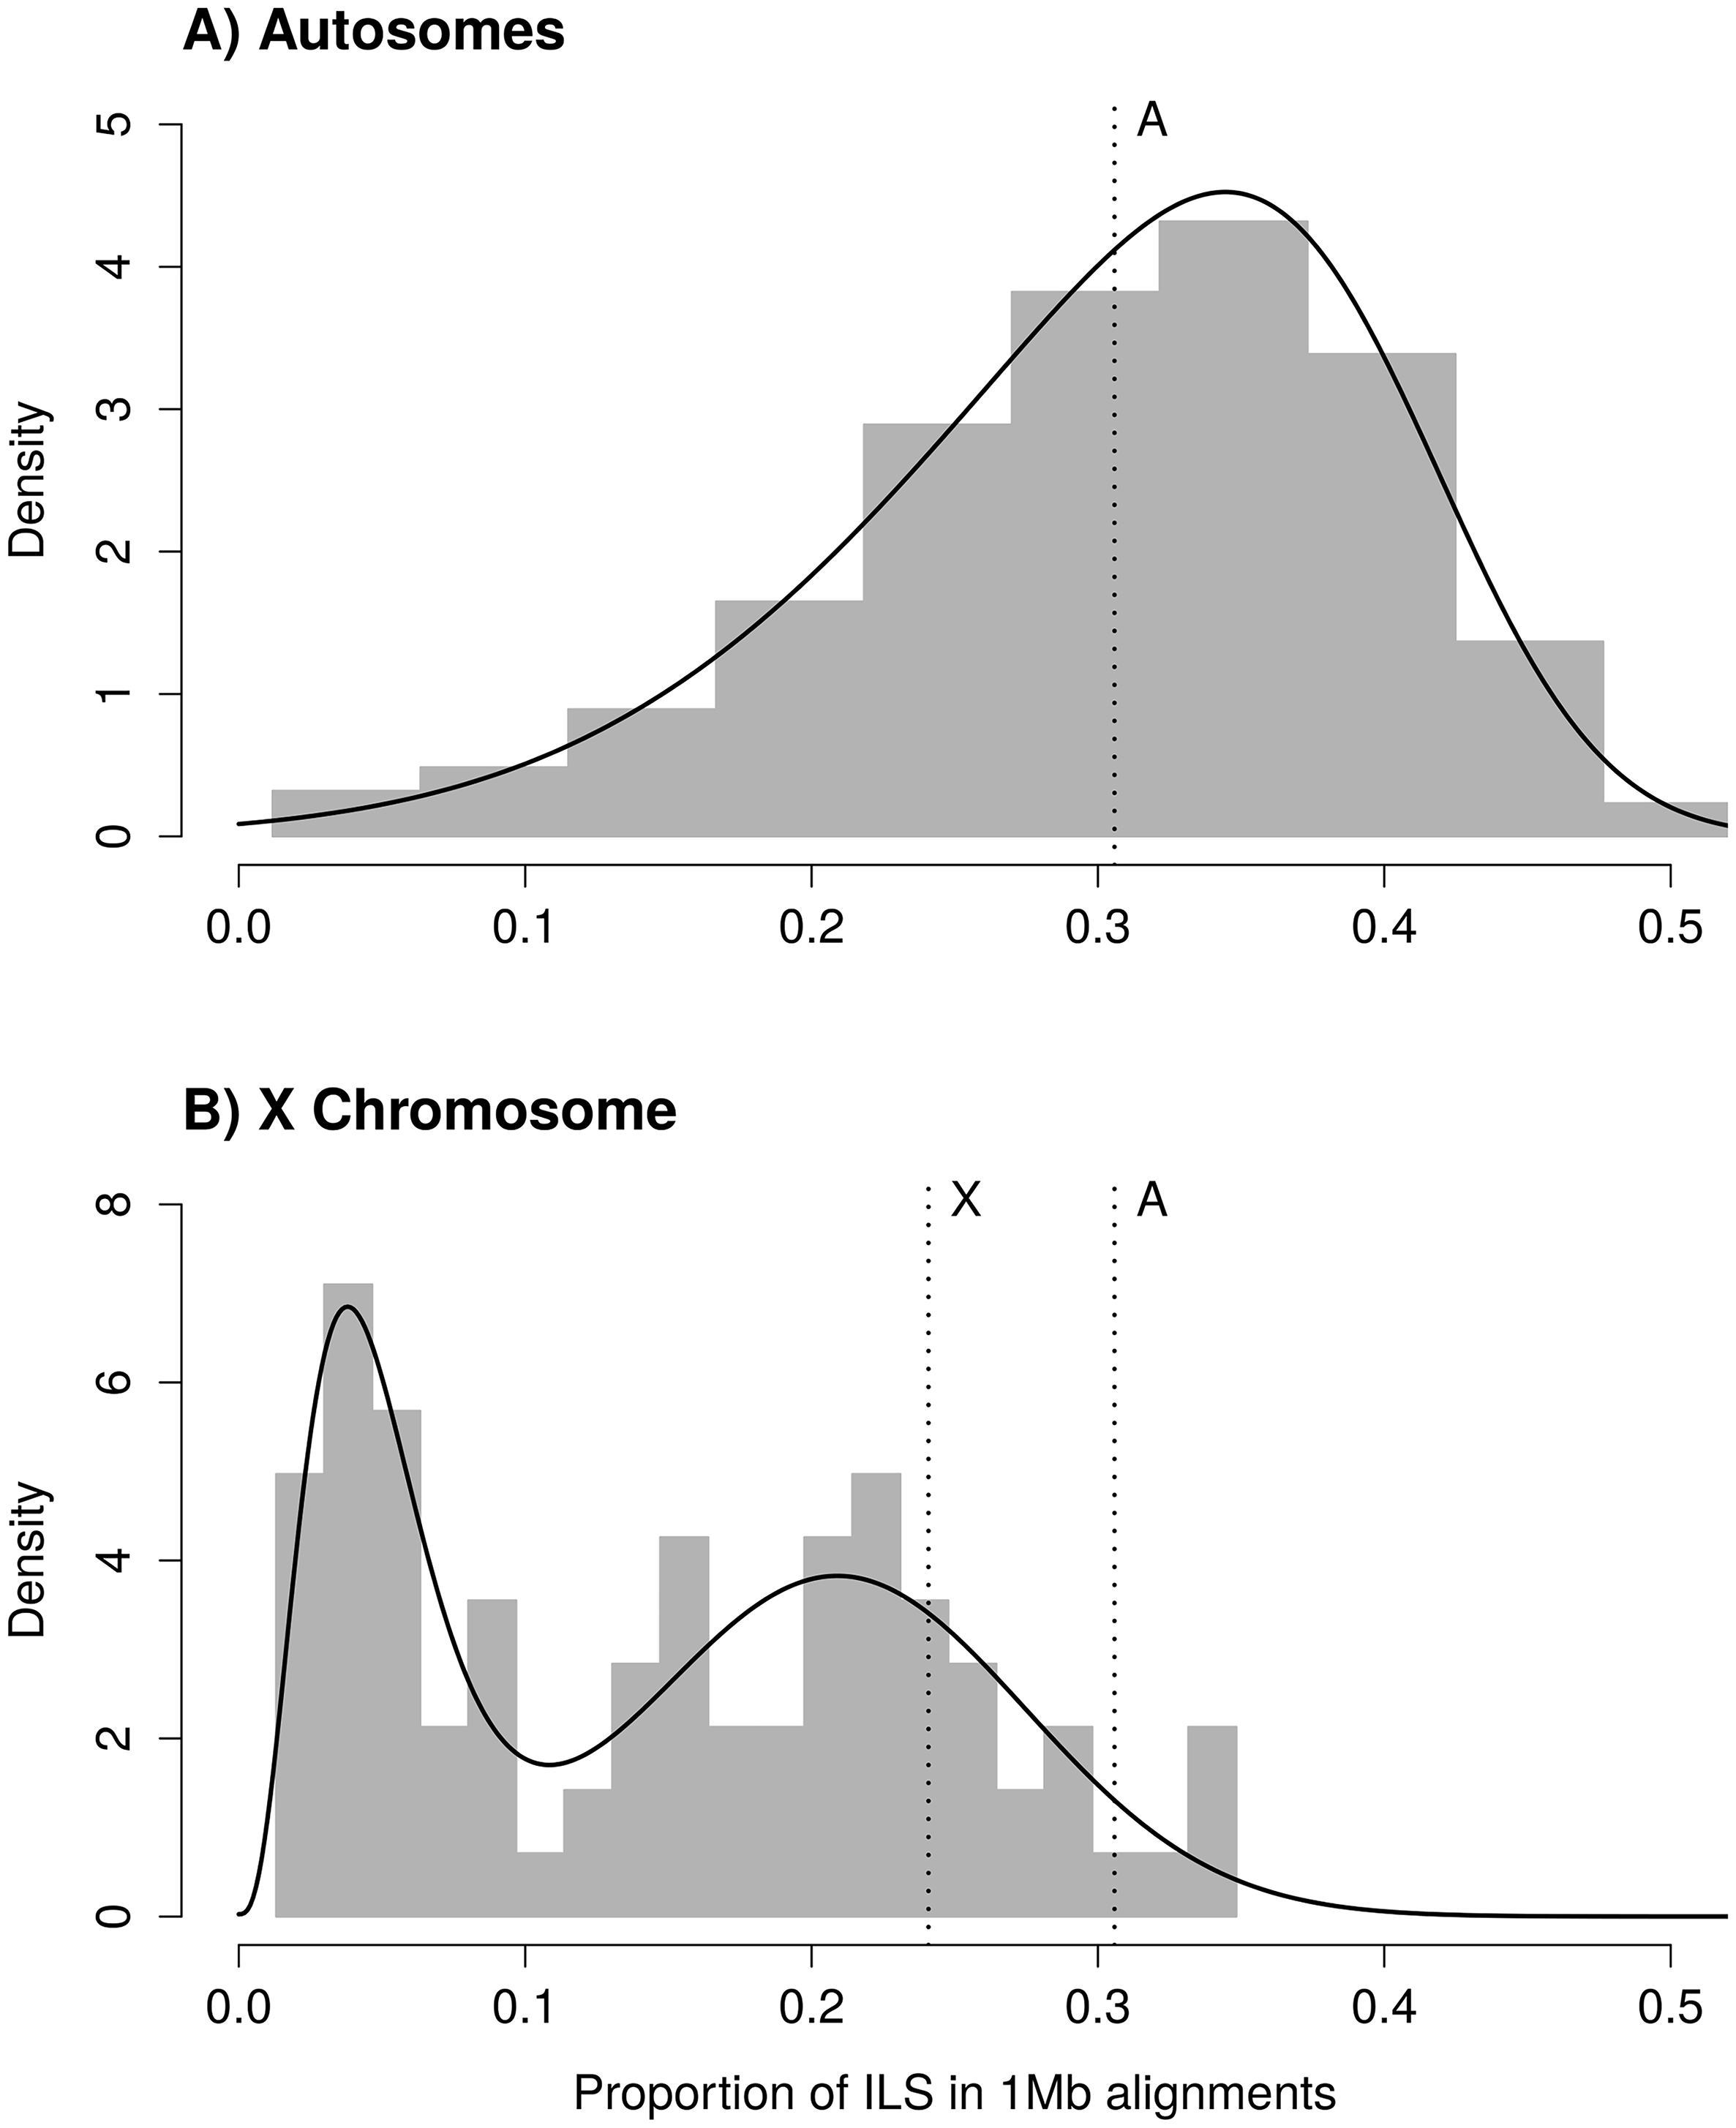 Fig 1.  Distribution of incomplete lineage sorting (ILS) along the human genome for autosomes (A) and the X chromosome (B).